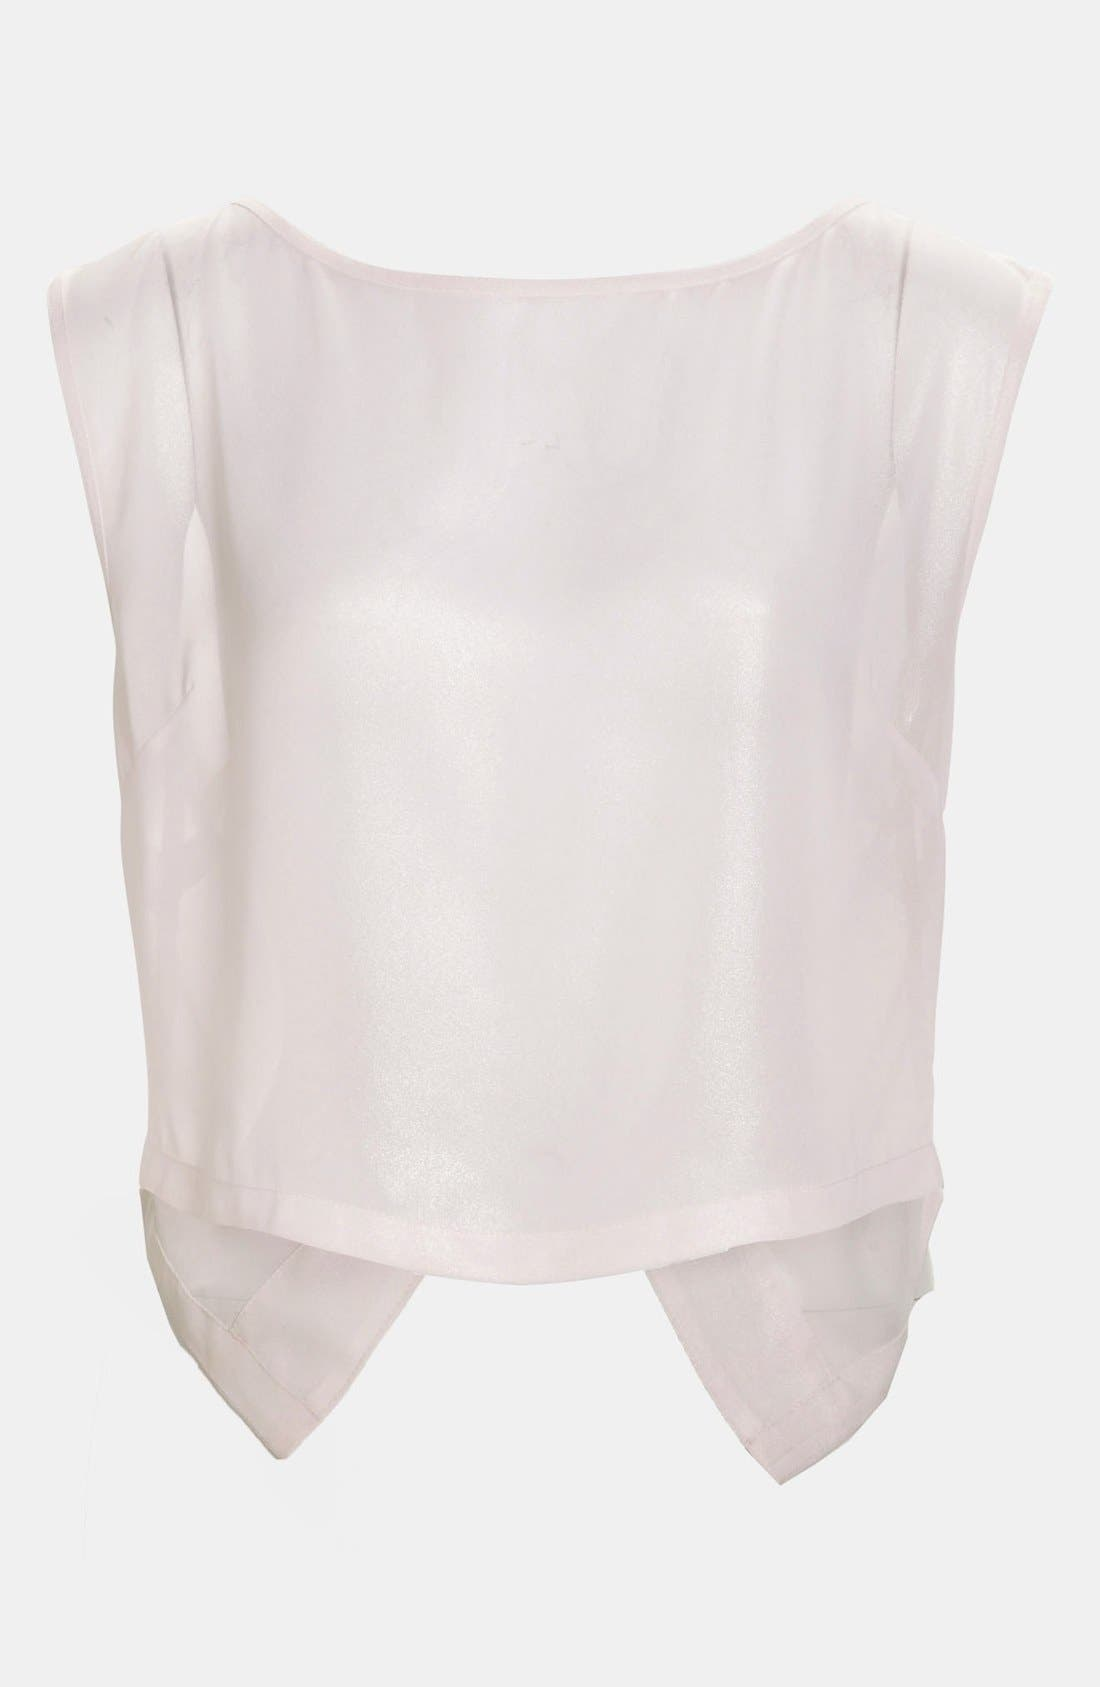 Main Image - Tildon 'Origami' Sheer Top